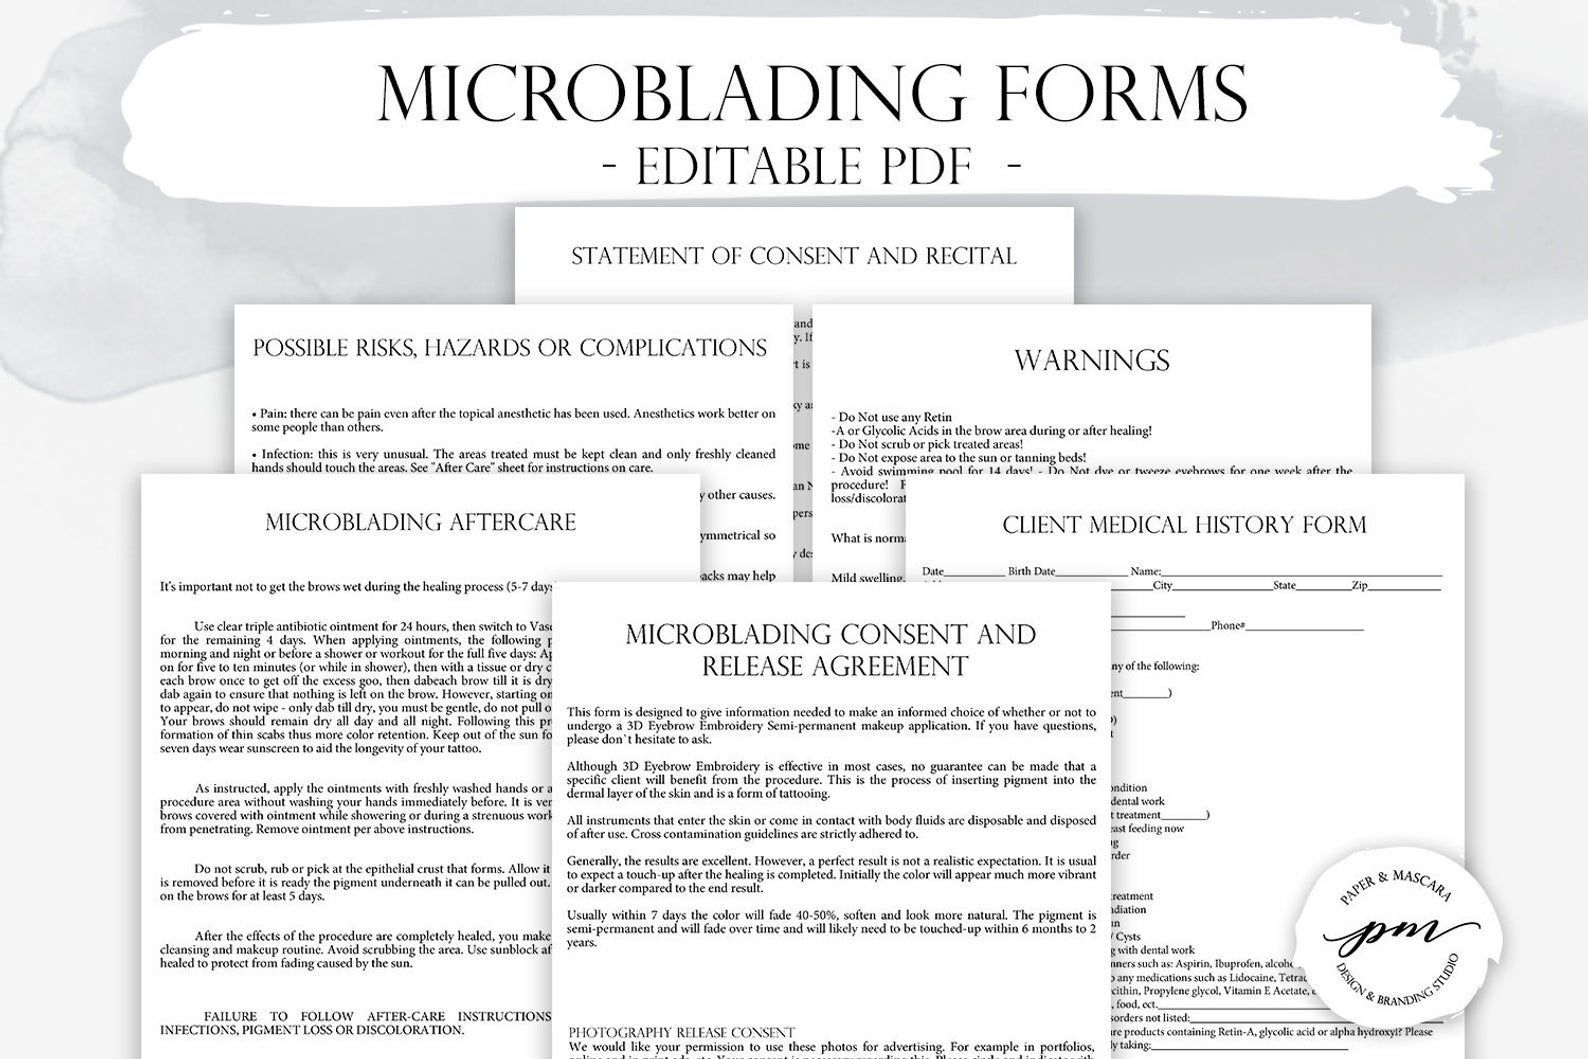 Permanent makeup forms for microblading microblading